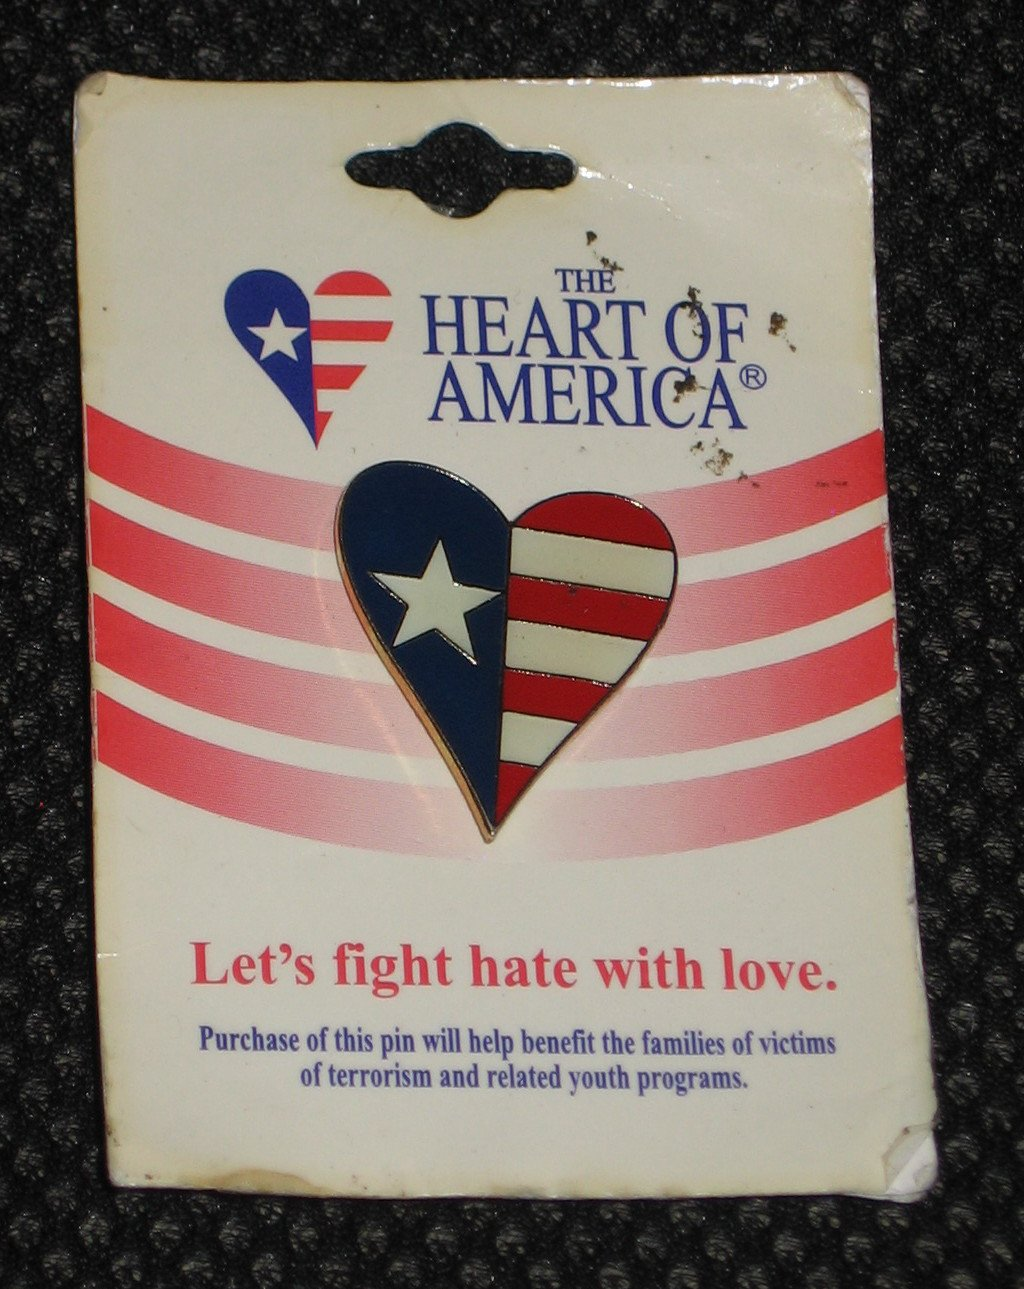 The Heart of America Foundation 2001 Collectible Pin Patriotic Star Stripes RARE Hard to Find